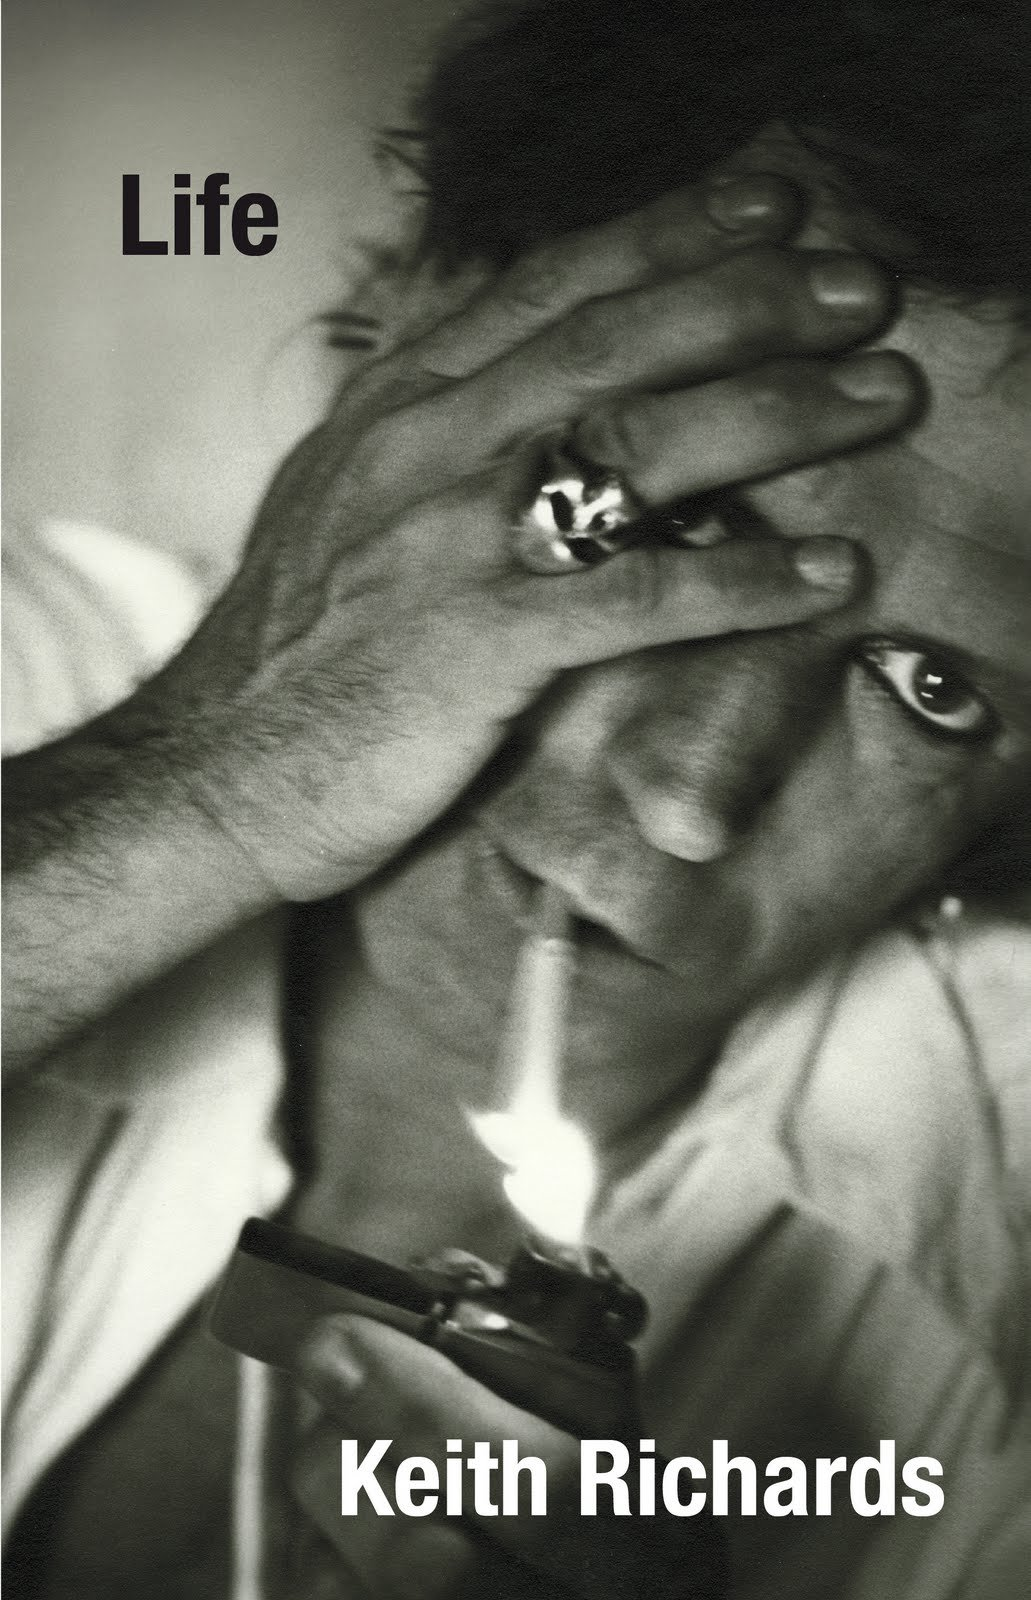 Keith Richards' Life book cover